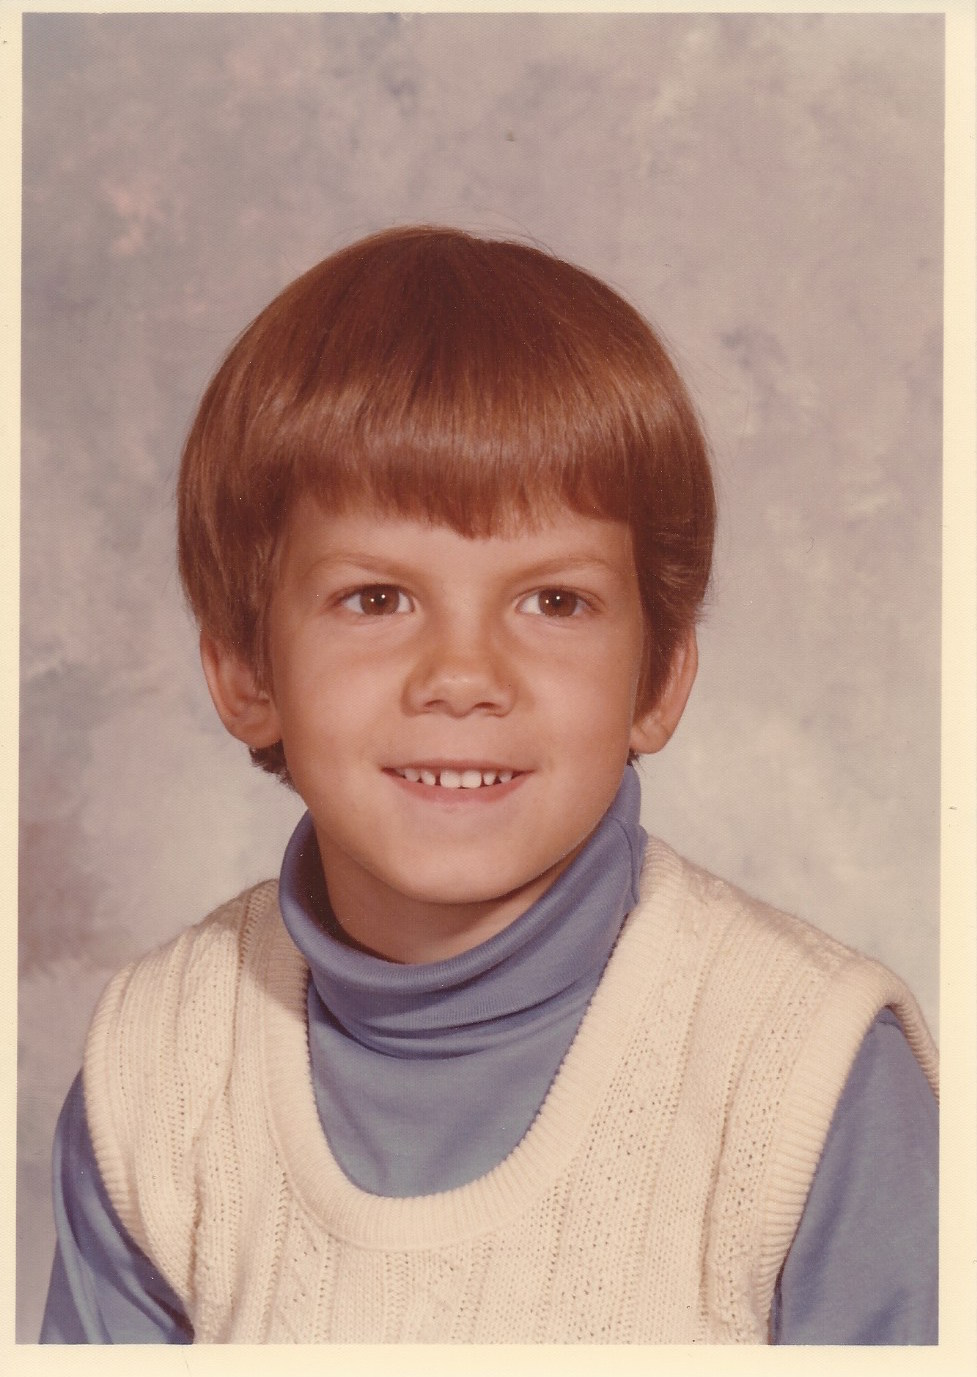 Jeff Whalen Growing Up 1976 - 6 years old (1st   Grade)